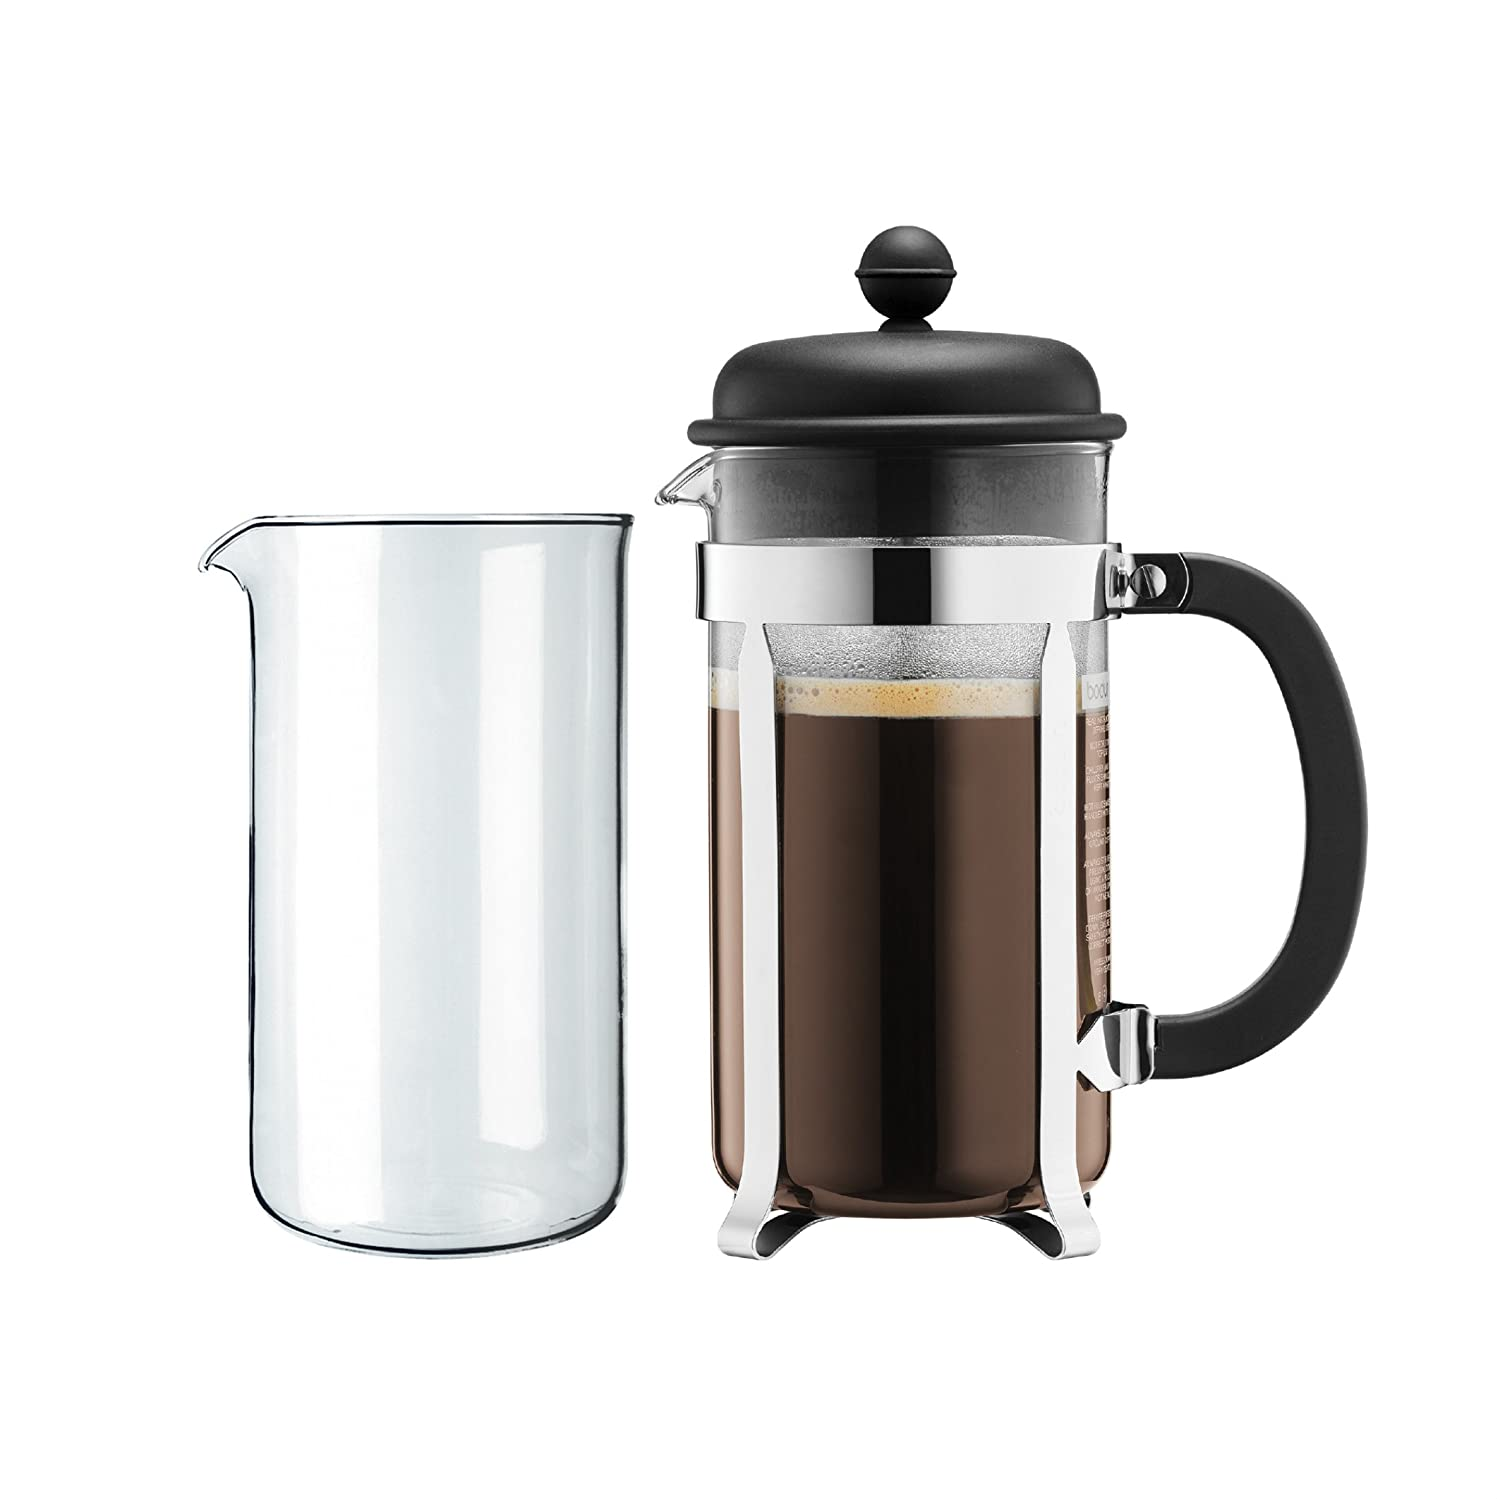 Caffettiera Set Coffee Maker, 8 Cup, 1.0 L, 34 Oz And Spare Beaker, BODUM K1918-01-1